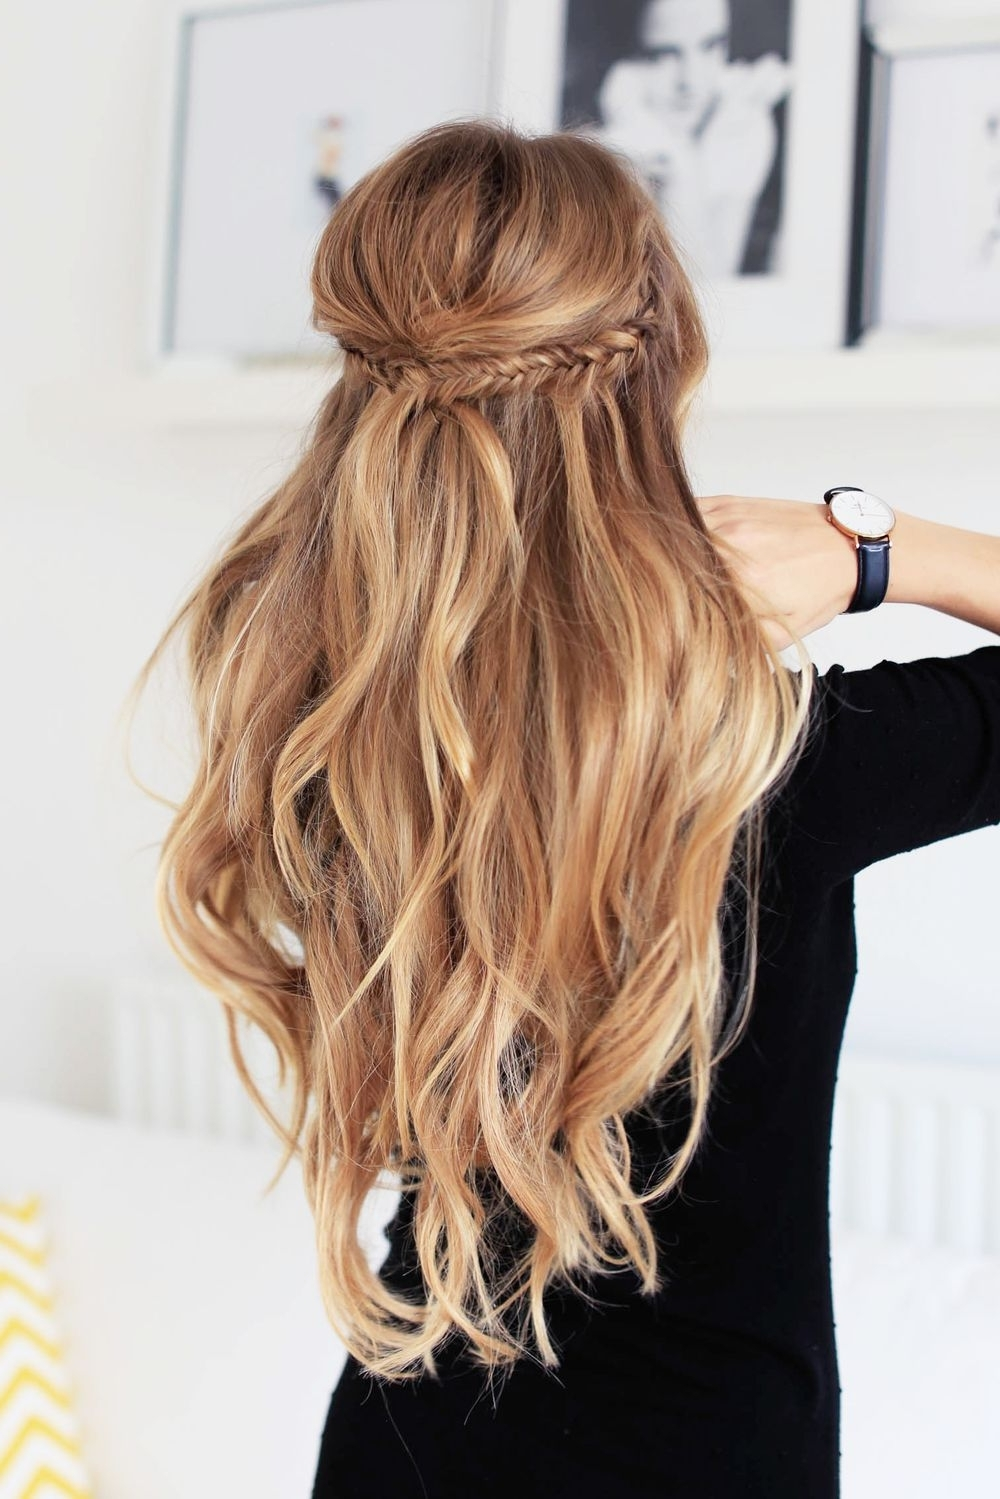 Best And Newest Ponytail Hairstyles With Wild Wavy Ombre With Make Two Small Fishtail Braids On Each Side, Then Put Them Together (View 4 of 20)